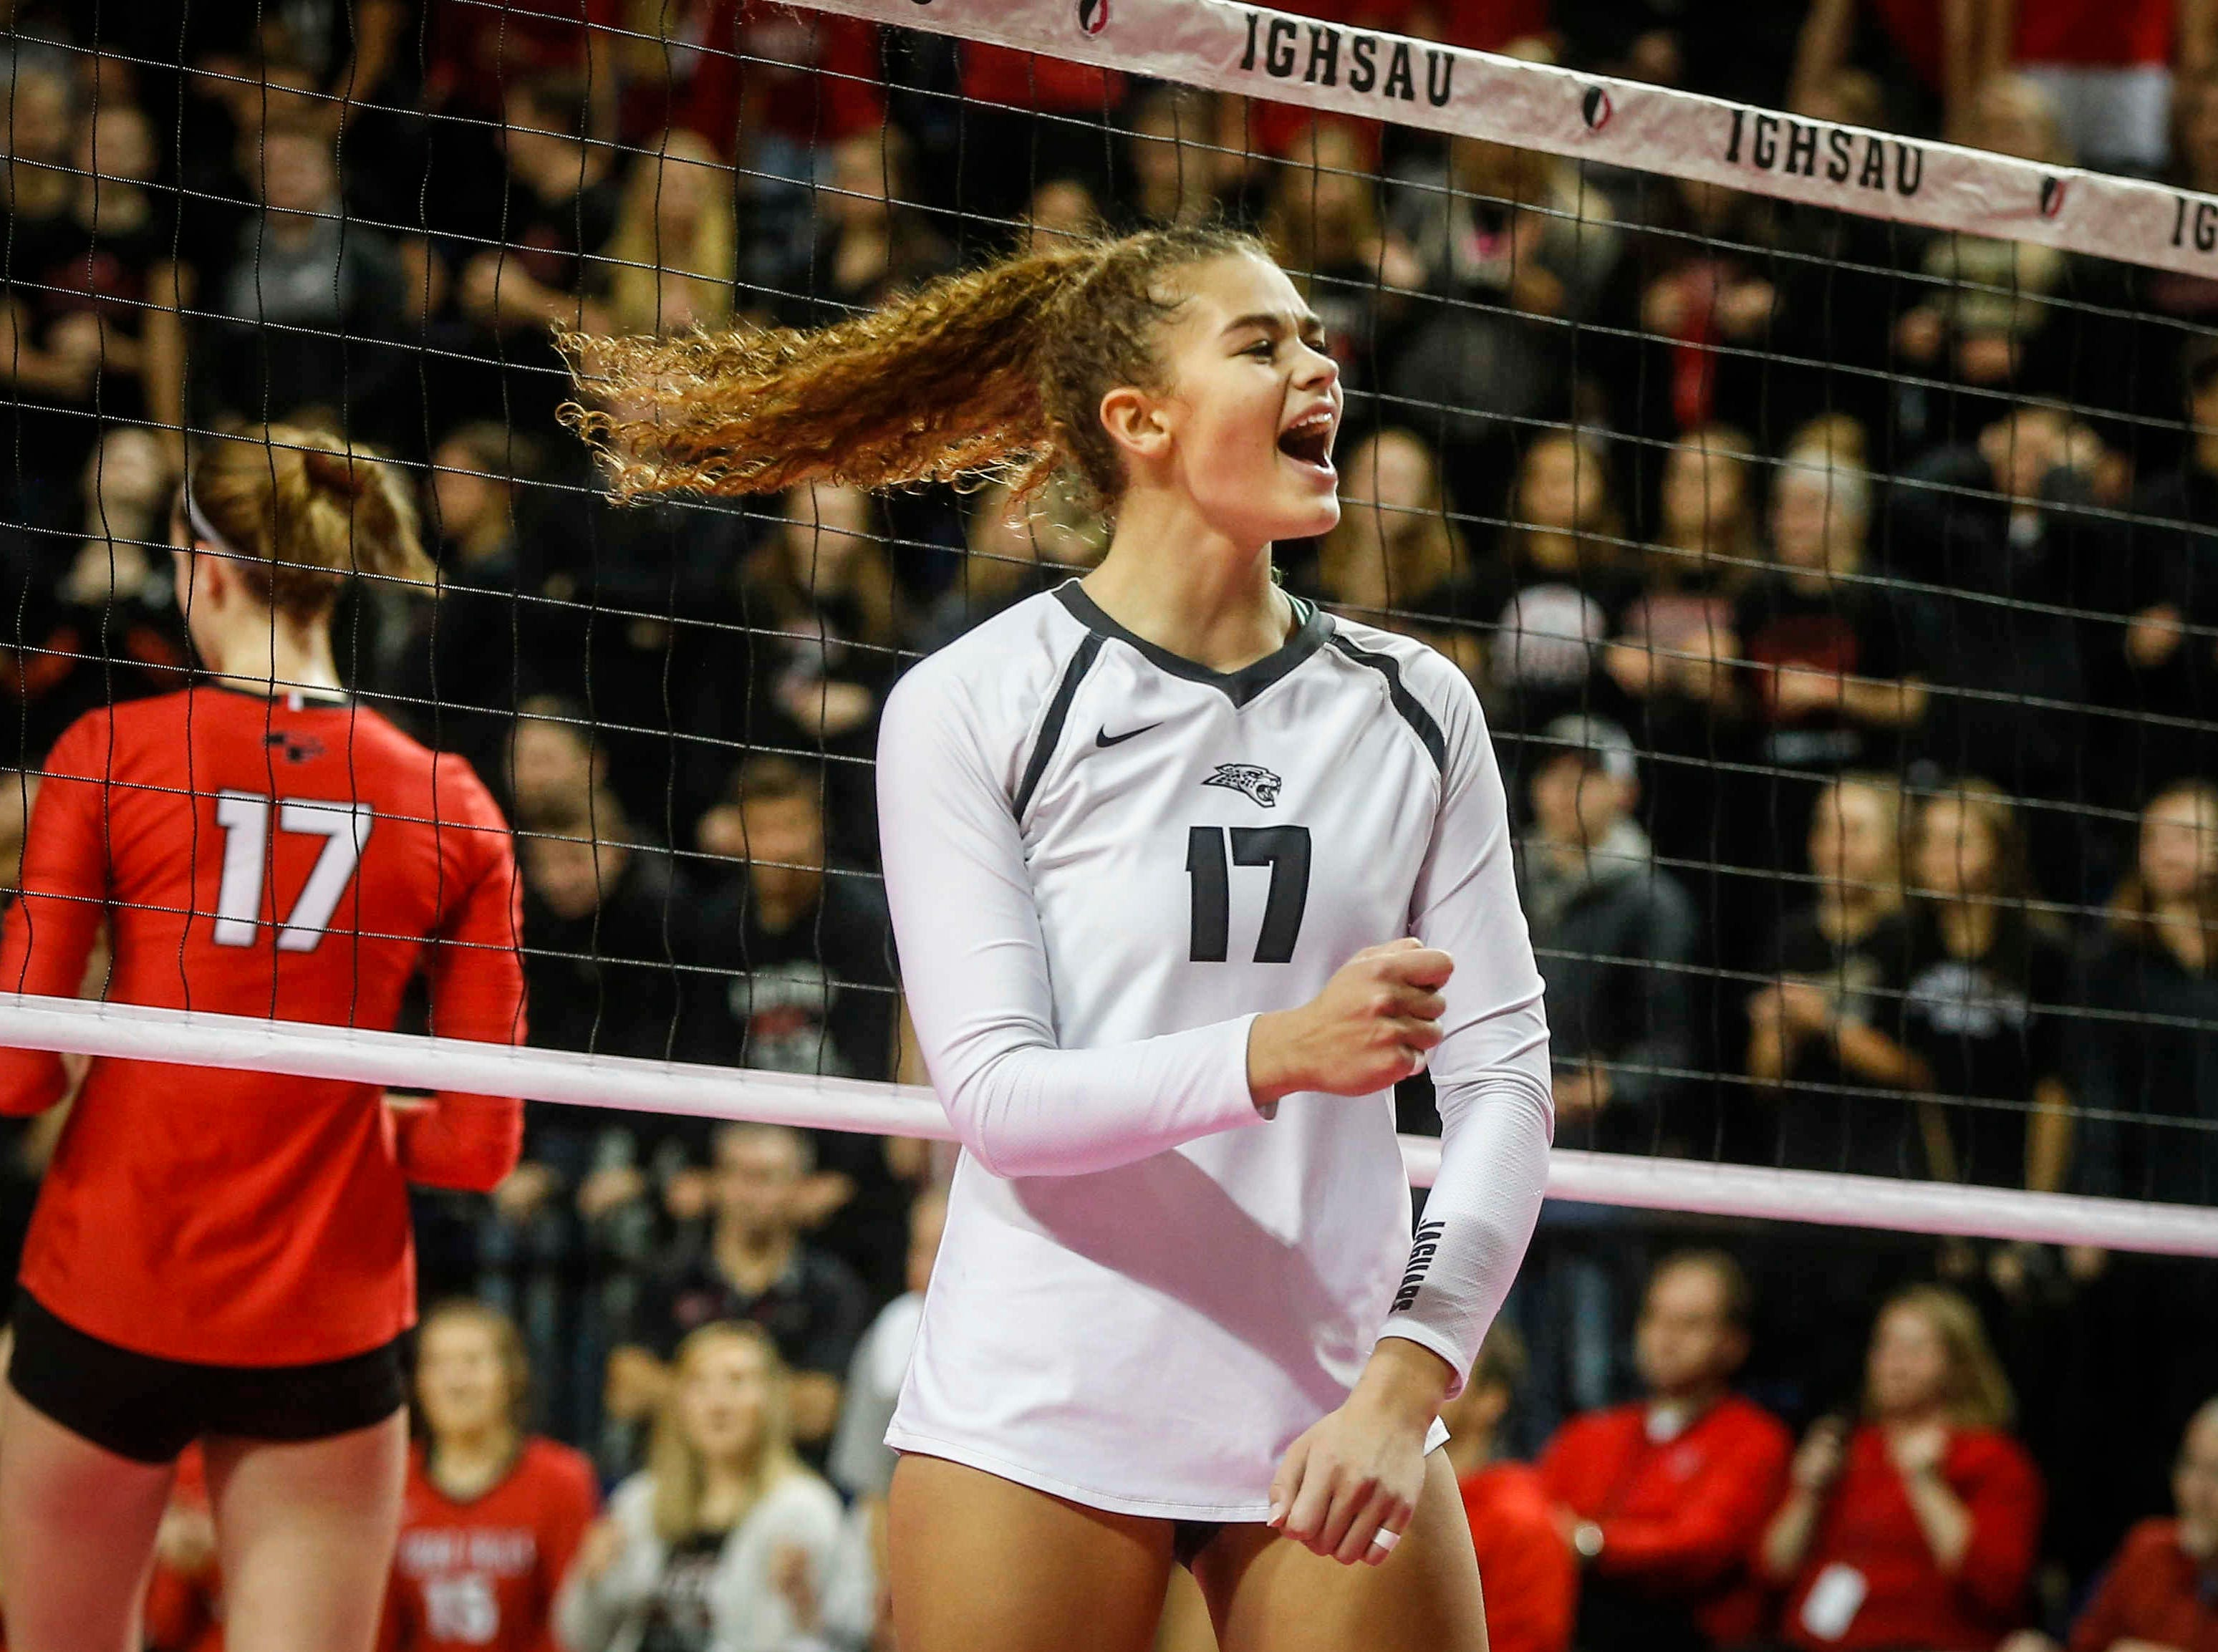 Ankeny Centennial's Ari Winters reacts after scoring a point against Cedar Falls during the Class 5A state volleyball tournament championship game on Friday, Nov. 9, 2018, in Cedar Rapids.